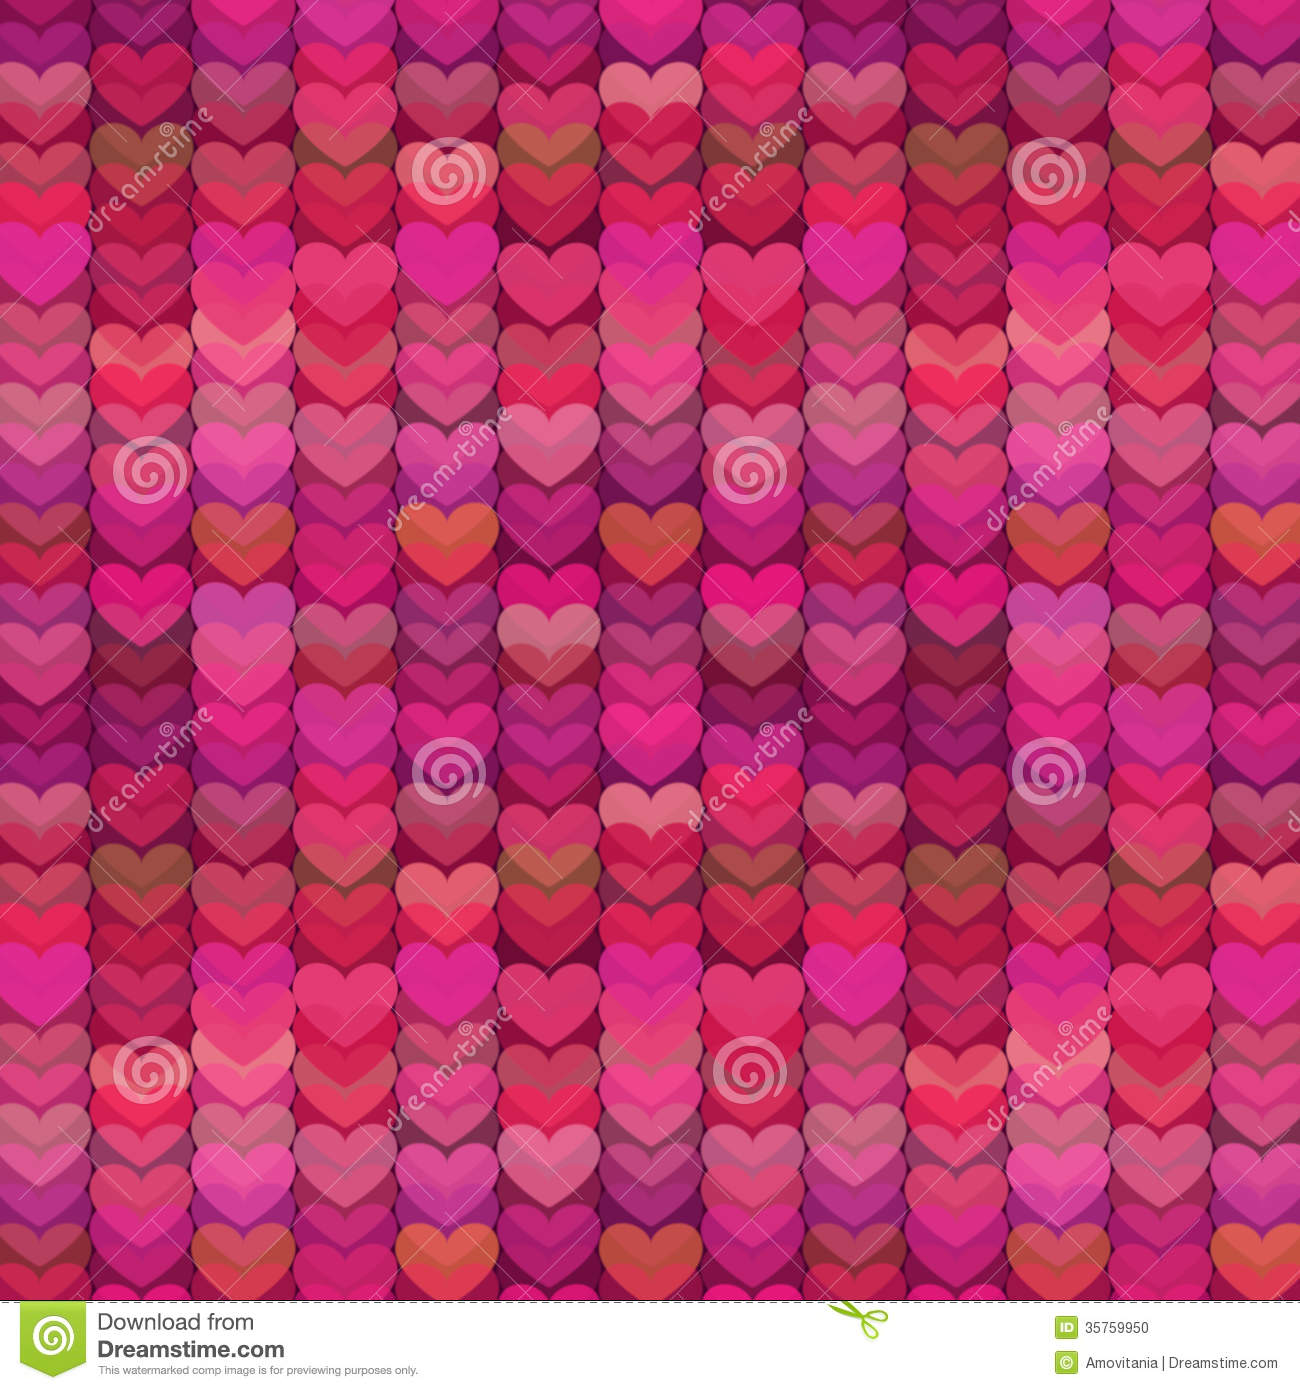 abstract hearts background in rich shades of pink stock vector image 35759950. Black Bedroom Furniture Sets. Home Design Ideas